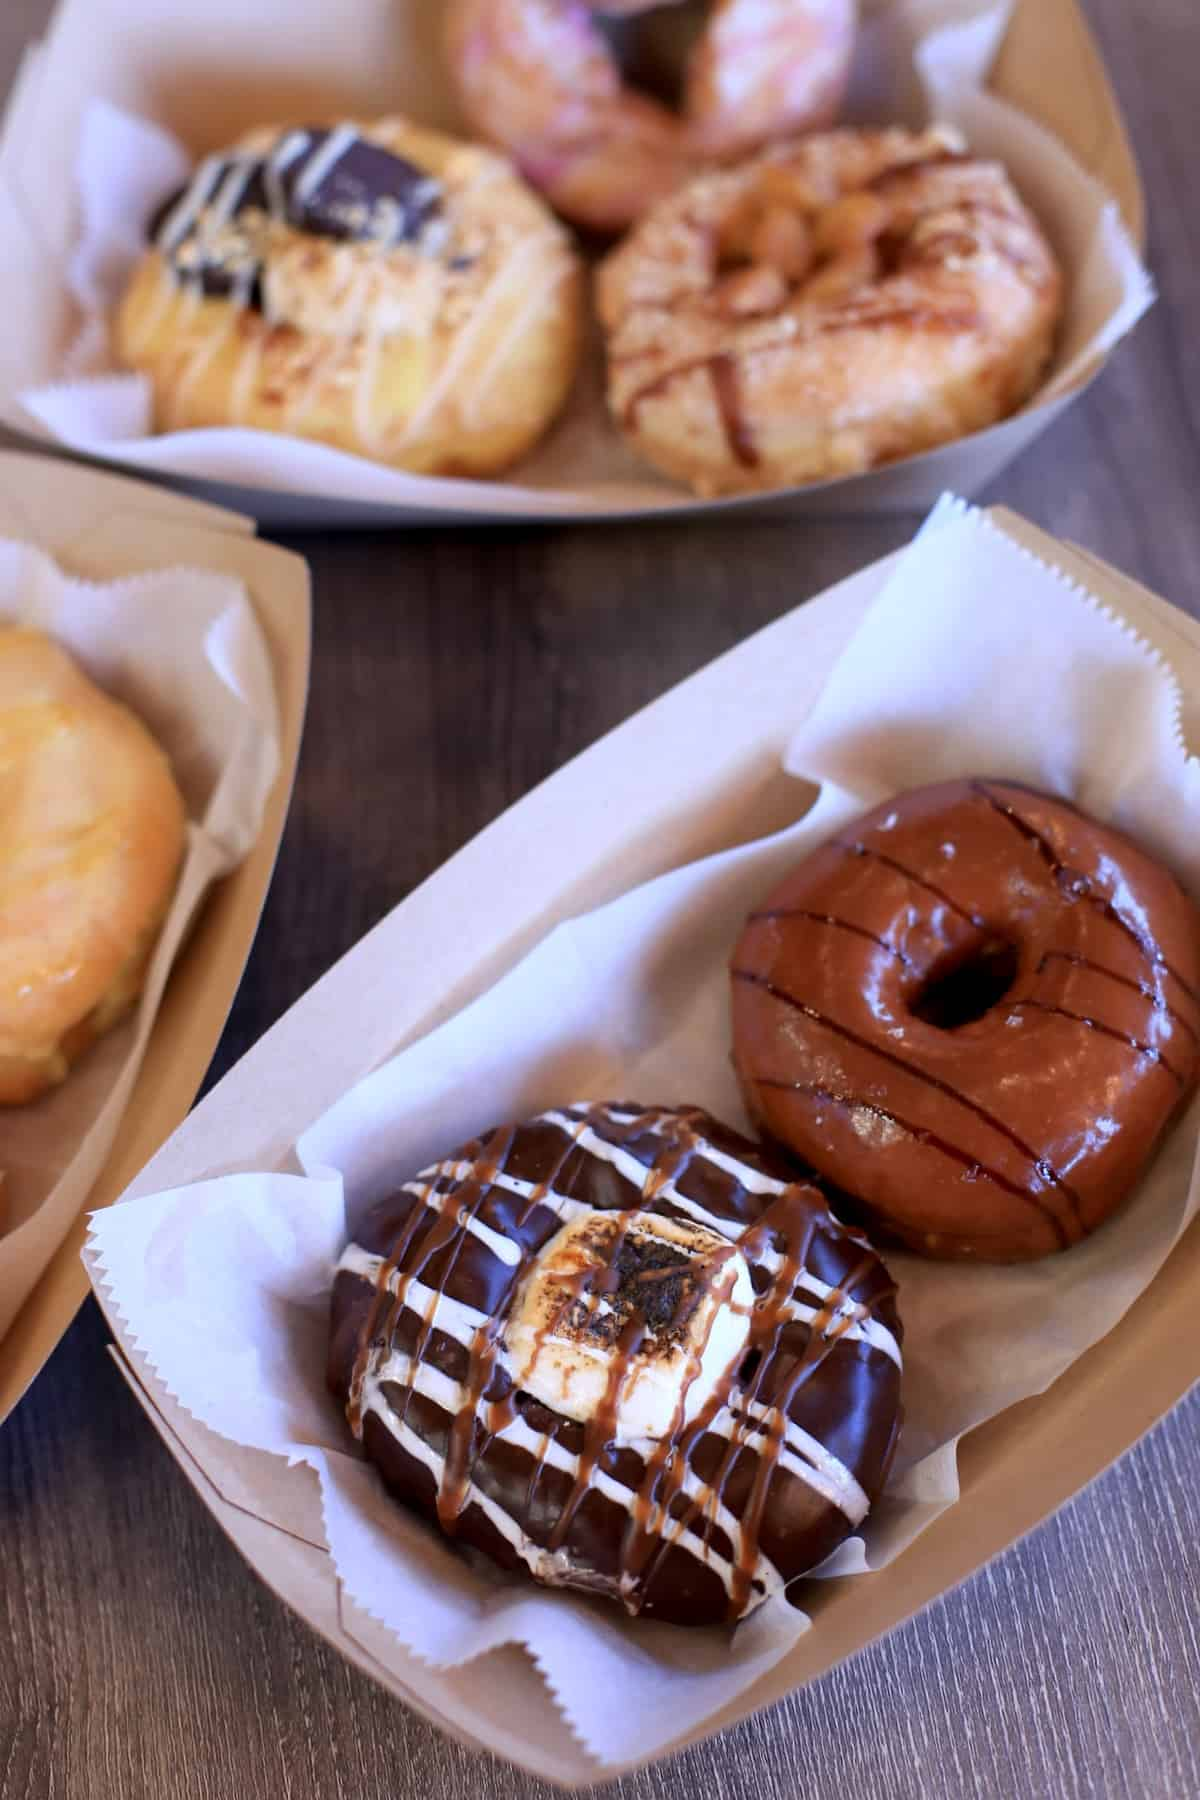 Best donut spots in Atlanta, best desserts in Atlanta - My Style Vita @mystylevita